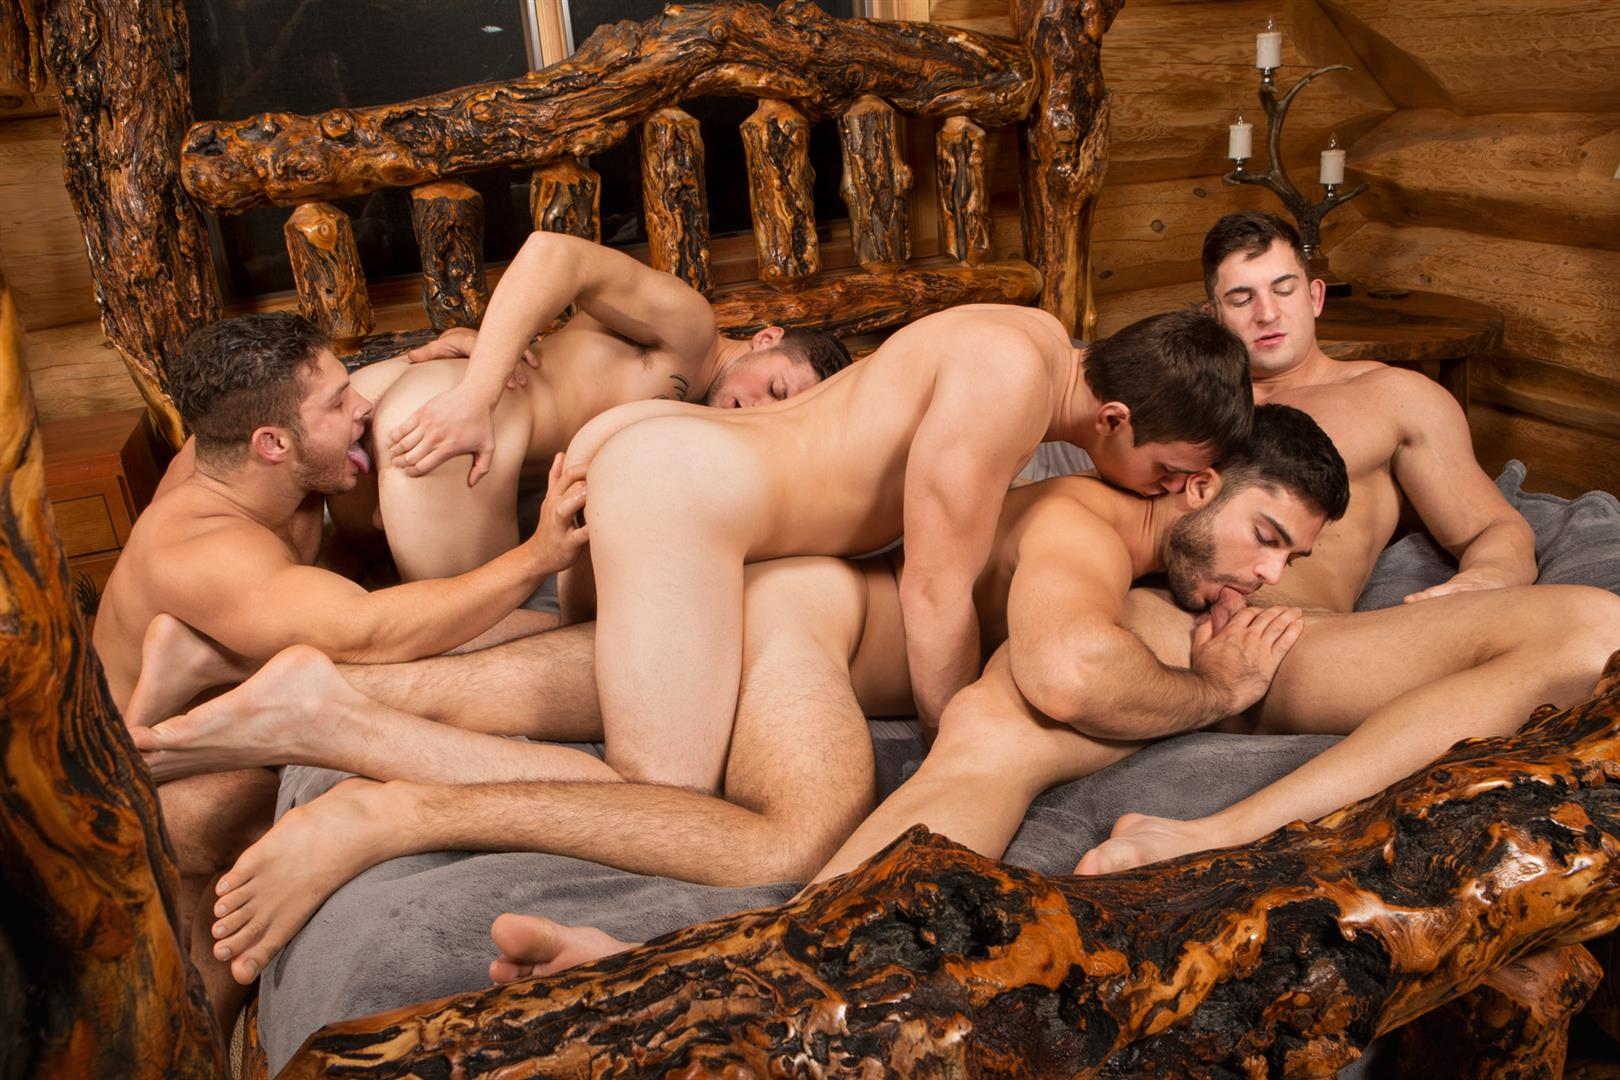 Sean-Cody-Winter-Getaway-Day-1-Big-Dick-Hunks-Fucking-Bareback-Amateur-Gay-Porn-11 Sean Cody Takes The Boys On A 8-Day Bareback Winter Getaway